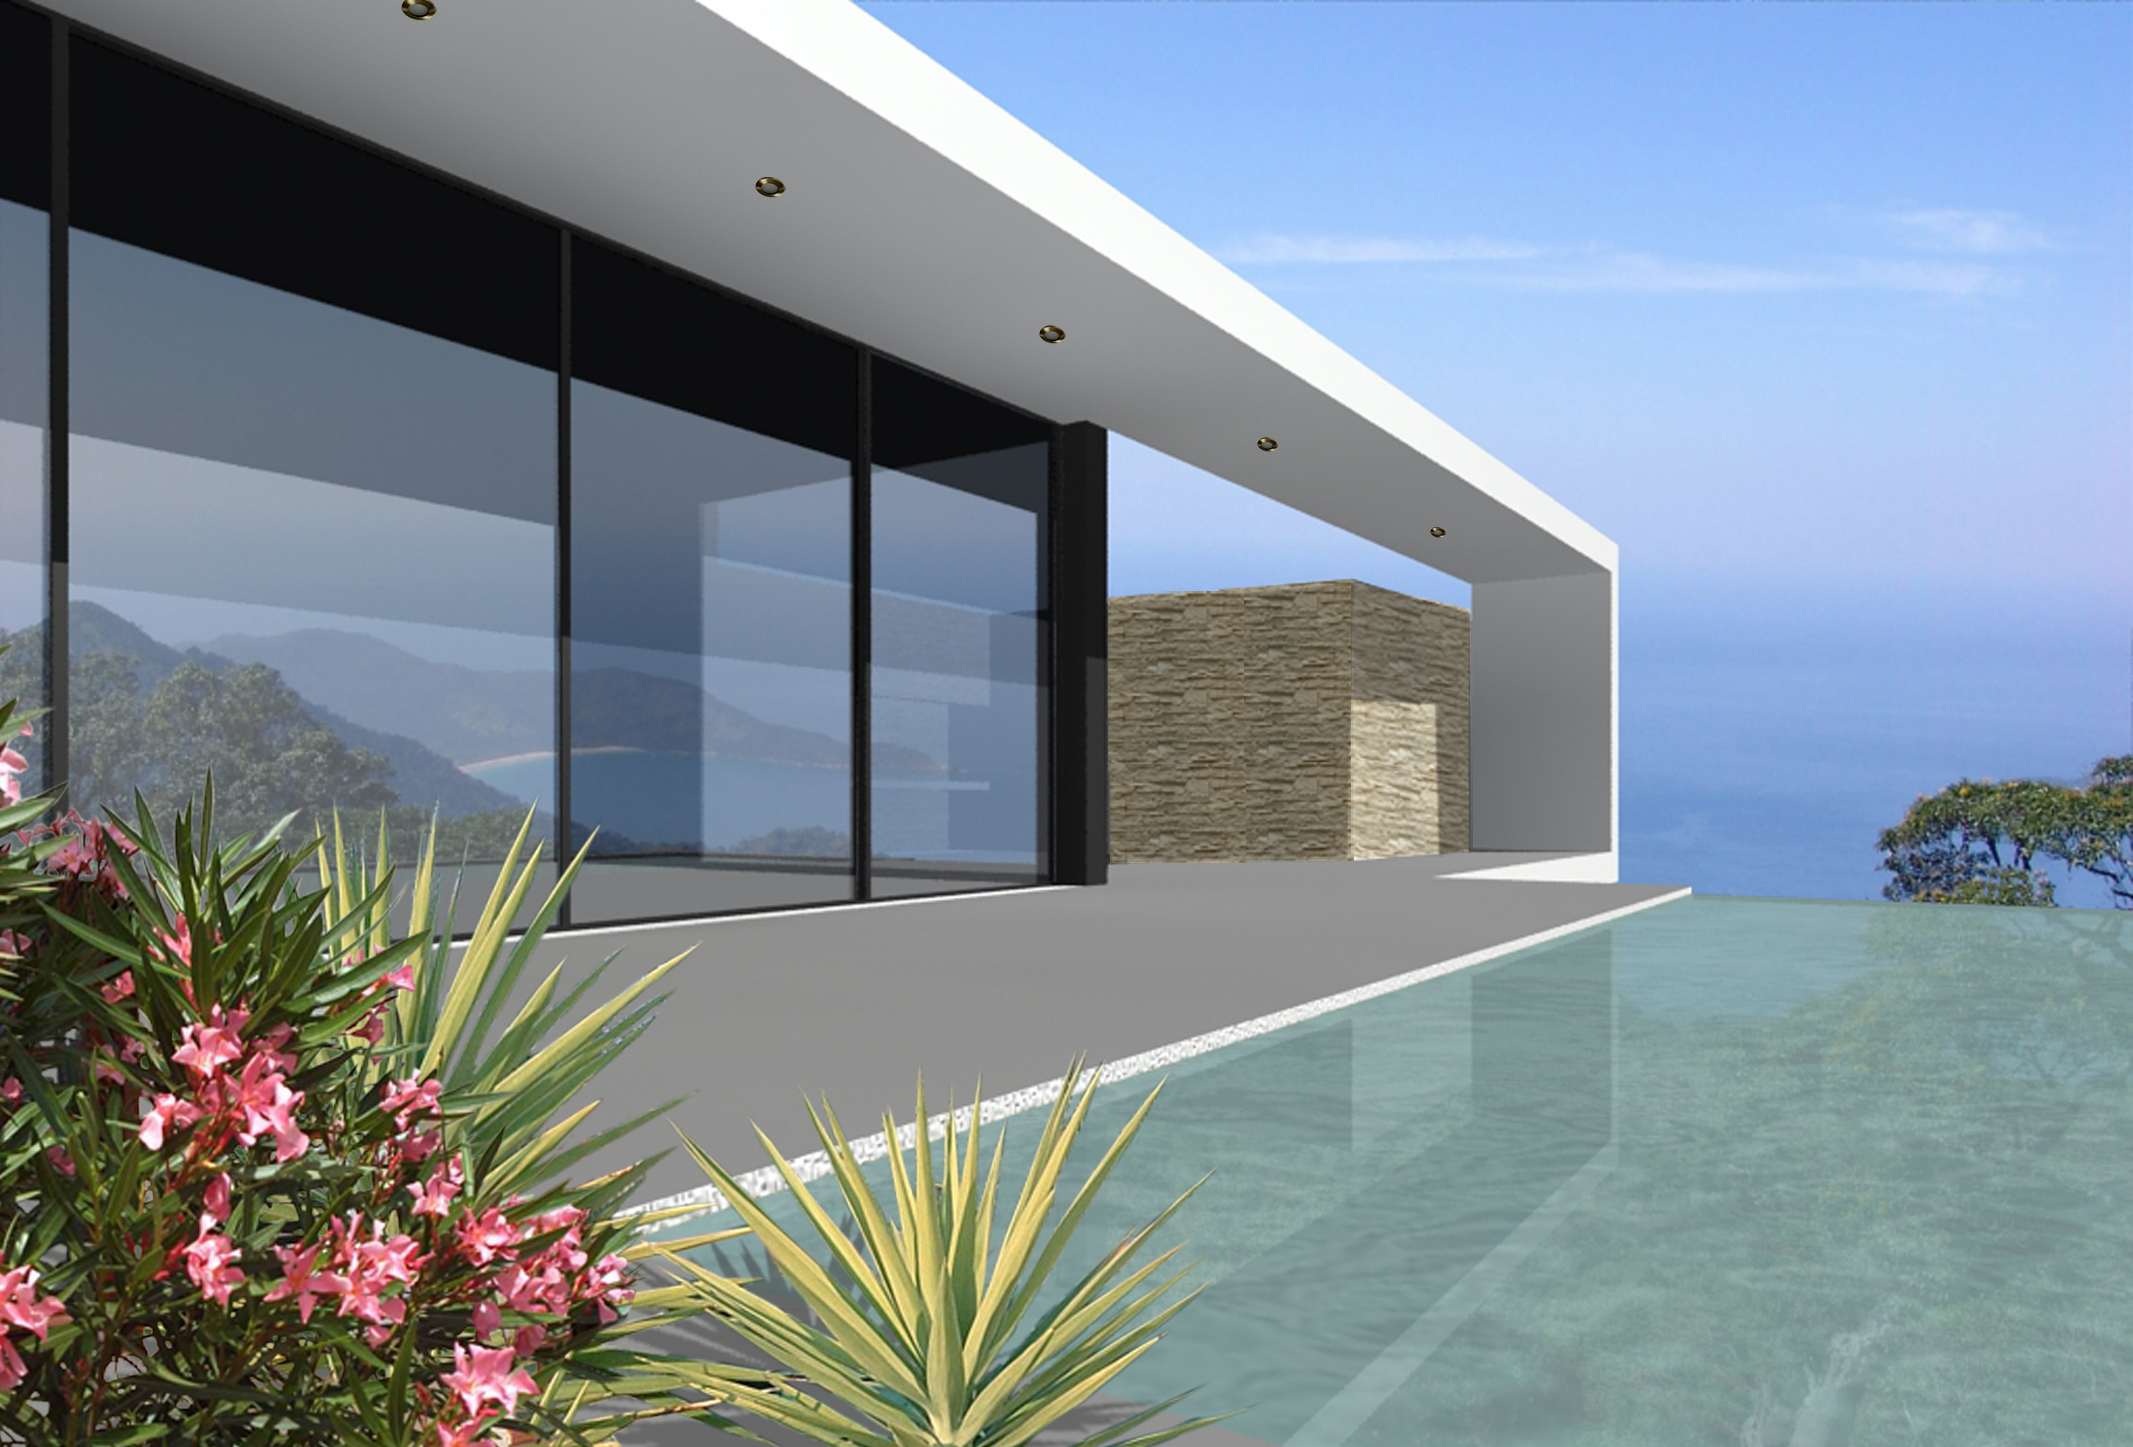 Villa contemporaine bord de mer architecture et ma tre d for Villa contemporaine plan